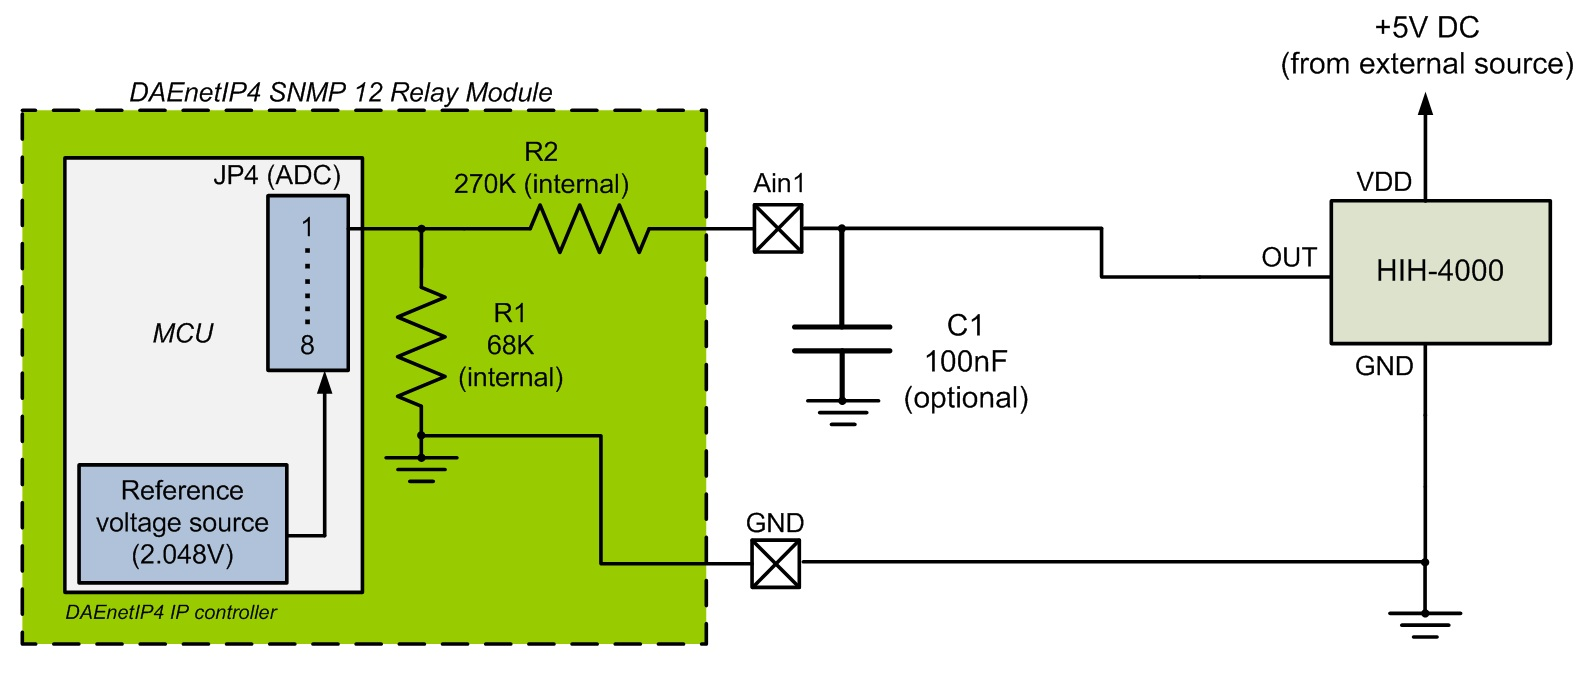 Connecting HIH-4000 (humidity sensor) to DAEnetIP4 12 Relay Module